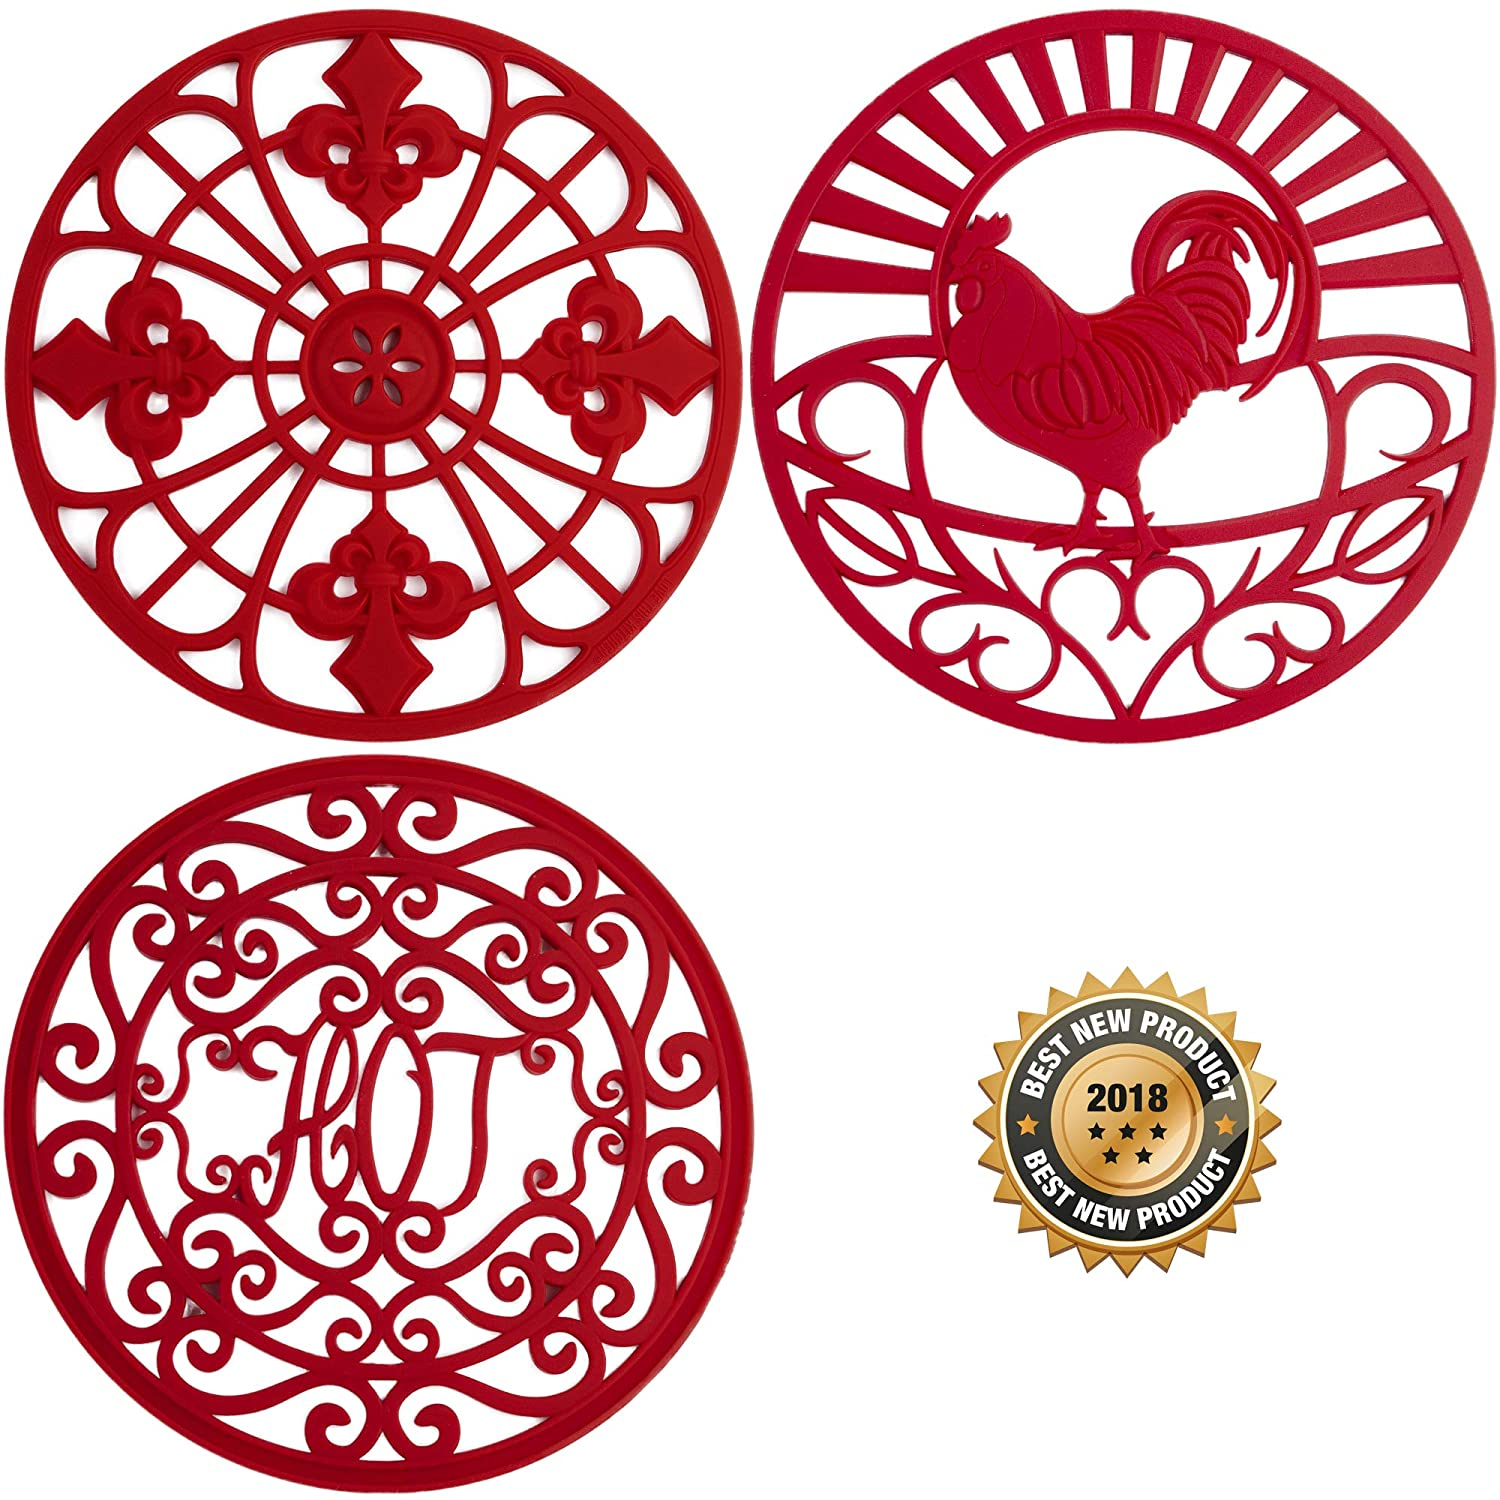 Silicone Trivets Set for Hot Dishes | Modern Kitchen Hot Pads for Pots & Pans | Mixed Design (Country Decor) Mimics A Cast Iron Trivet (7.5 Round, Set of 3, Coral Red) Love This Want This LTK-OT-AR